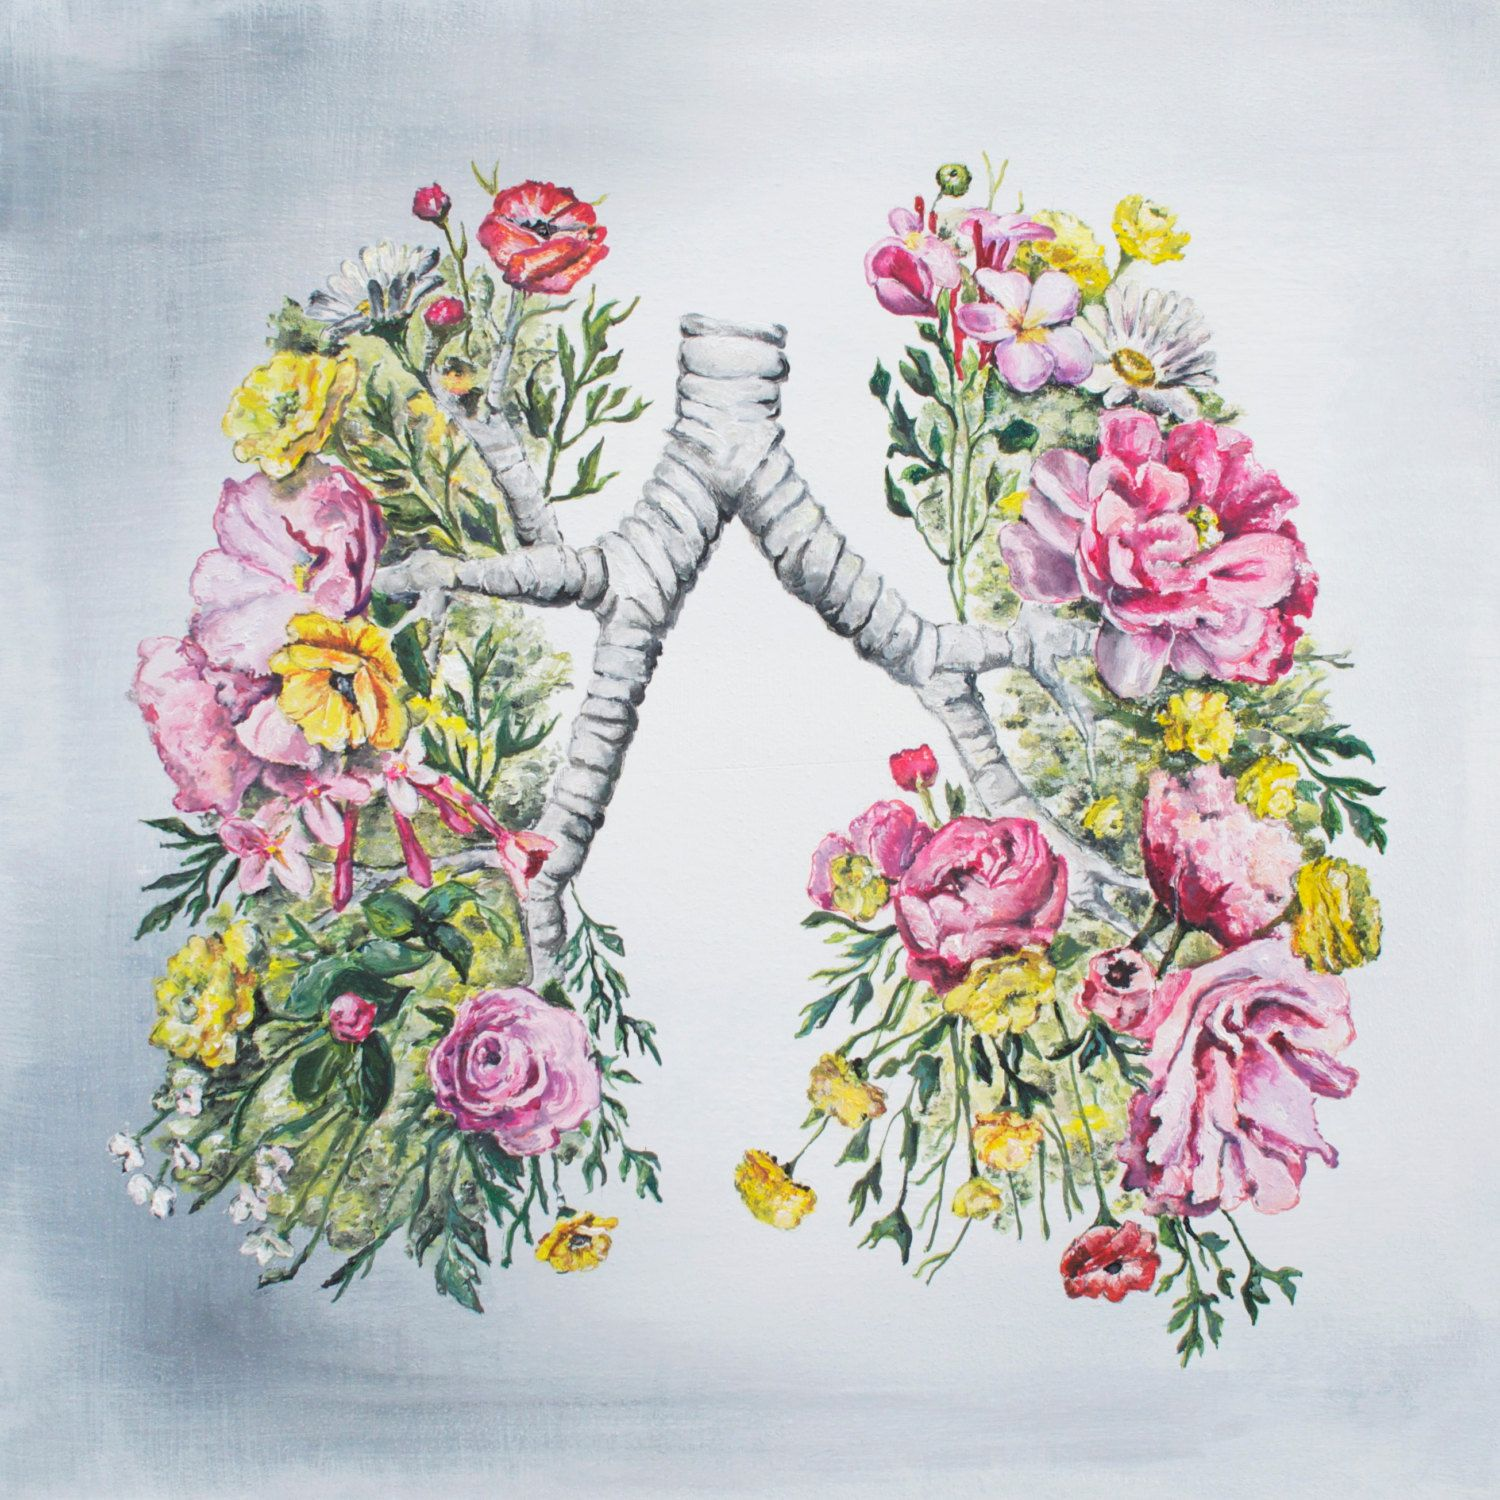 Floral Anatomy: Lungs Print of Oil Painting - Anatomical Art Print ...